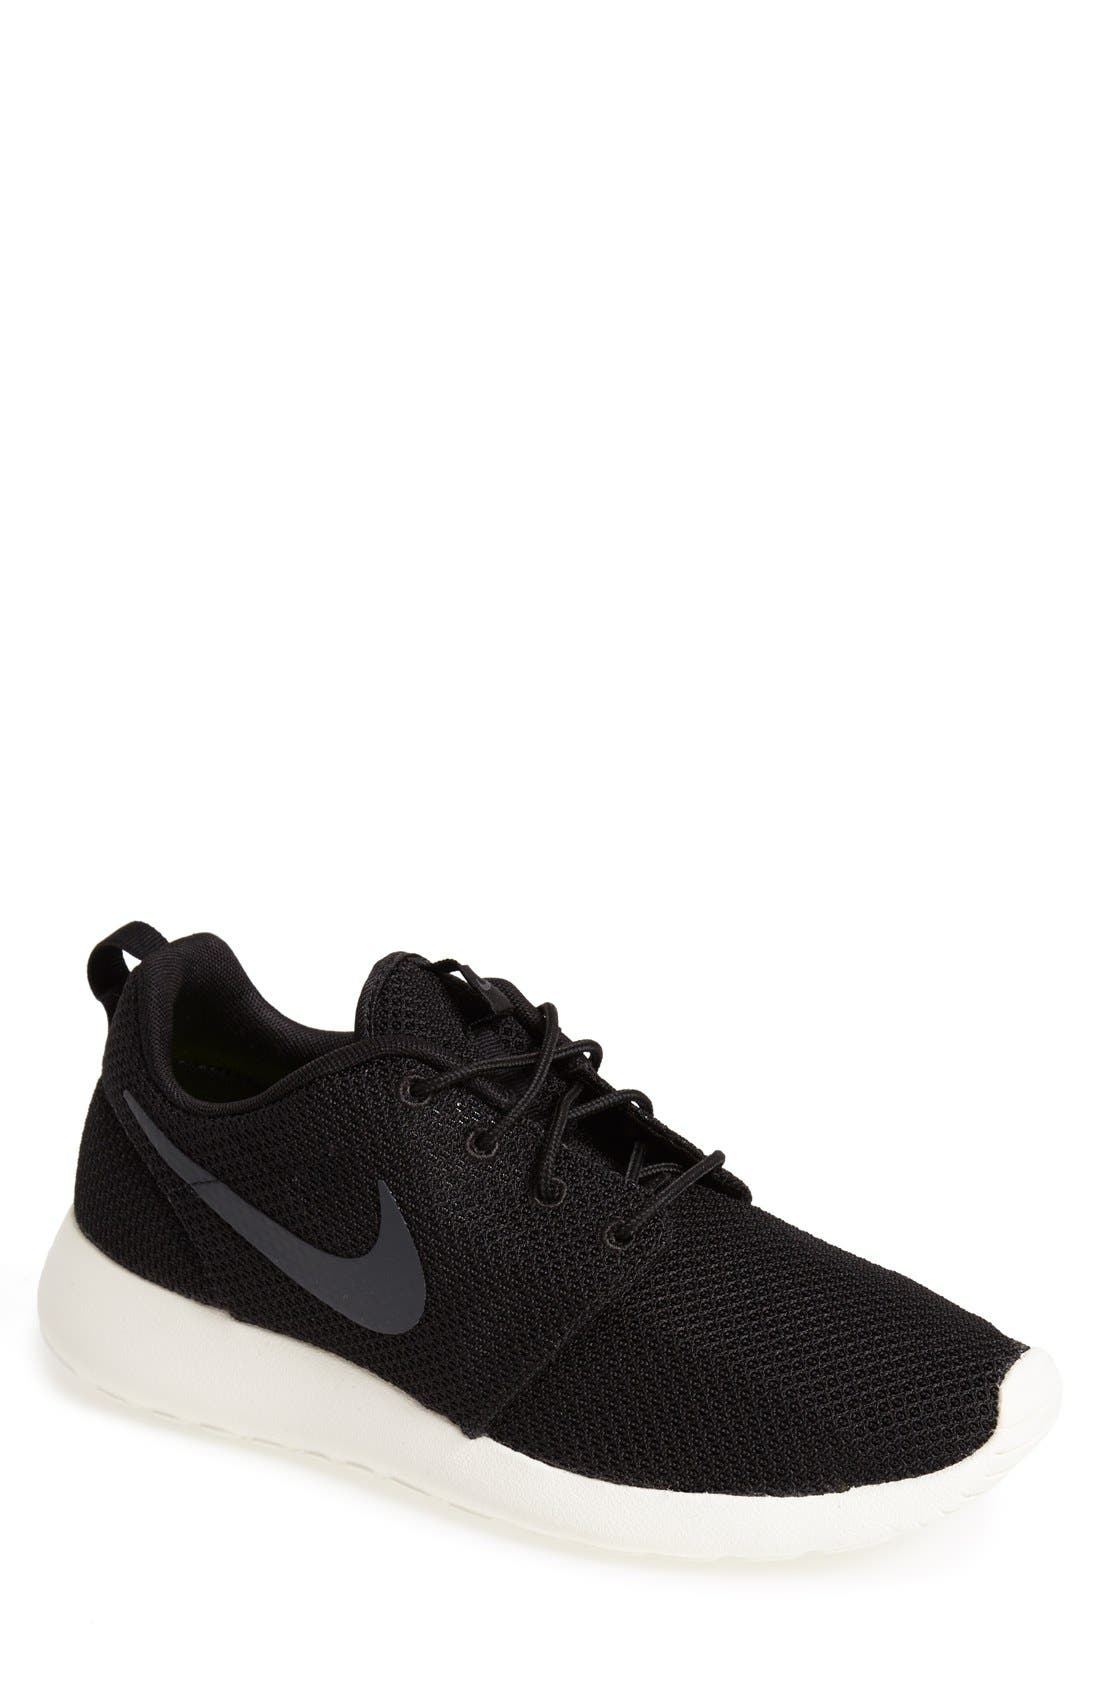 'Roshe Run' Sneaker,                             Main thumbnail 1, color,                             Black/ Anthracite/ Sail